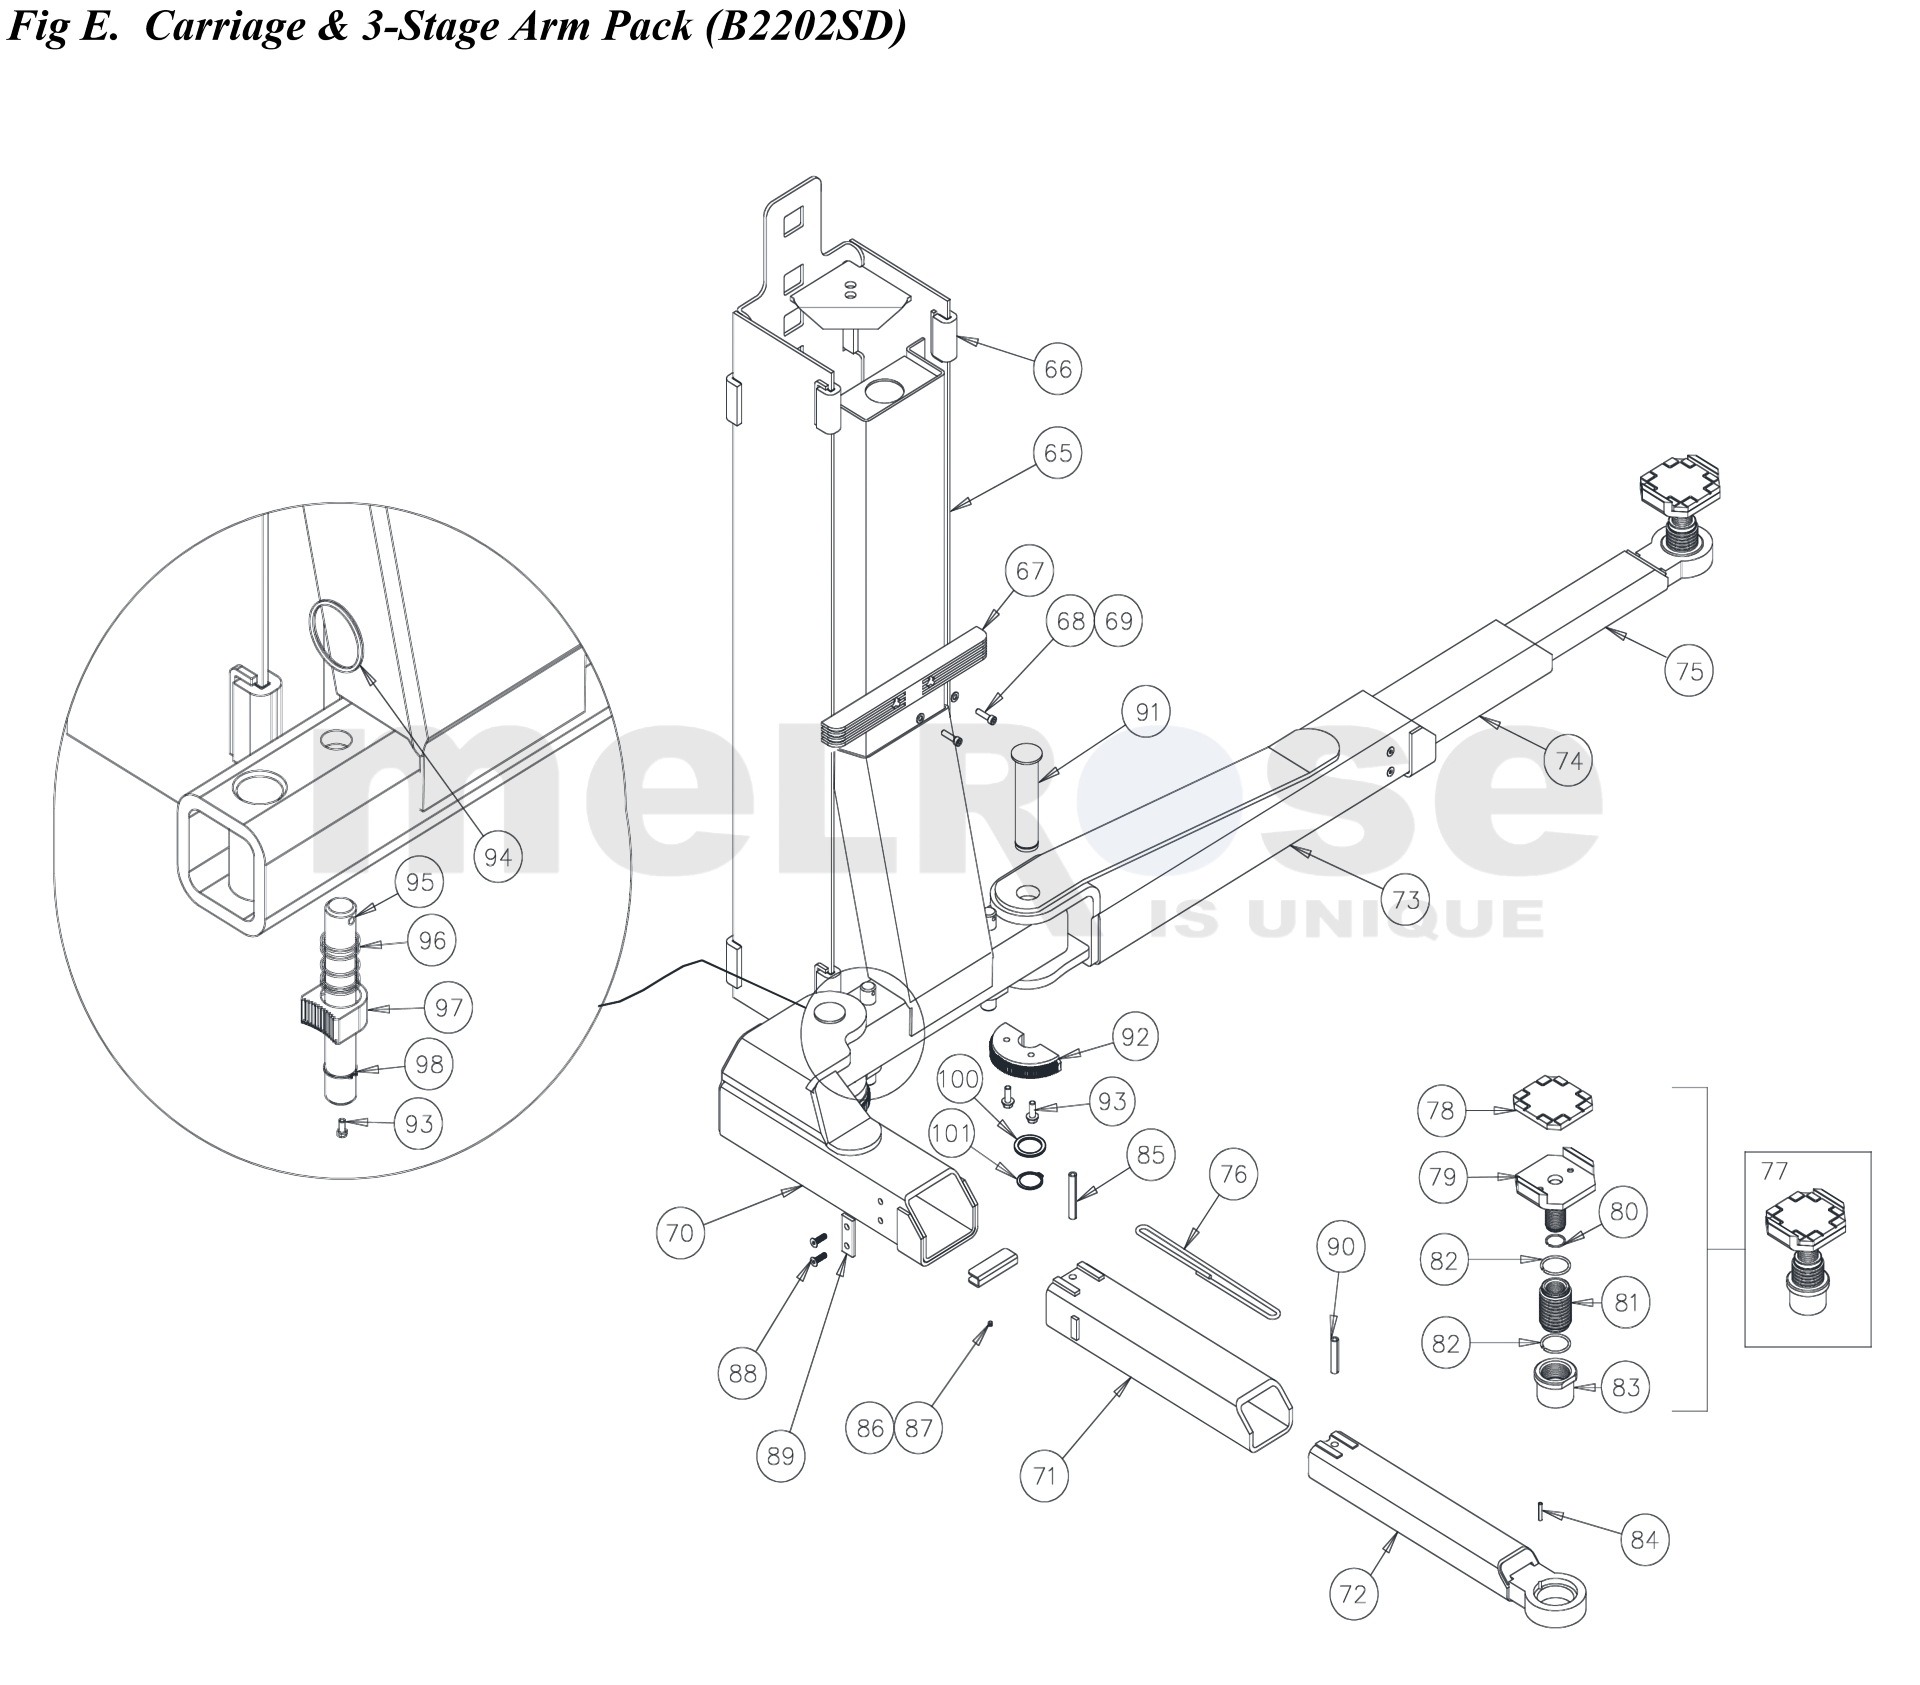 cl10-carriage-and-3-stage-arm-pack-diagram-marked.jpg